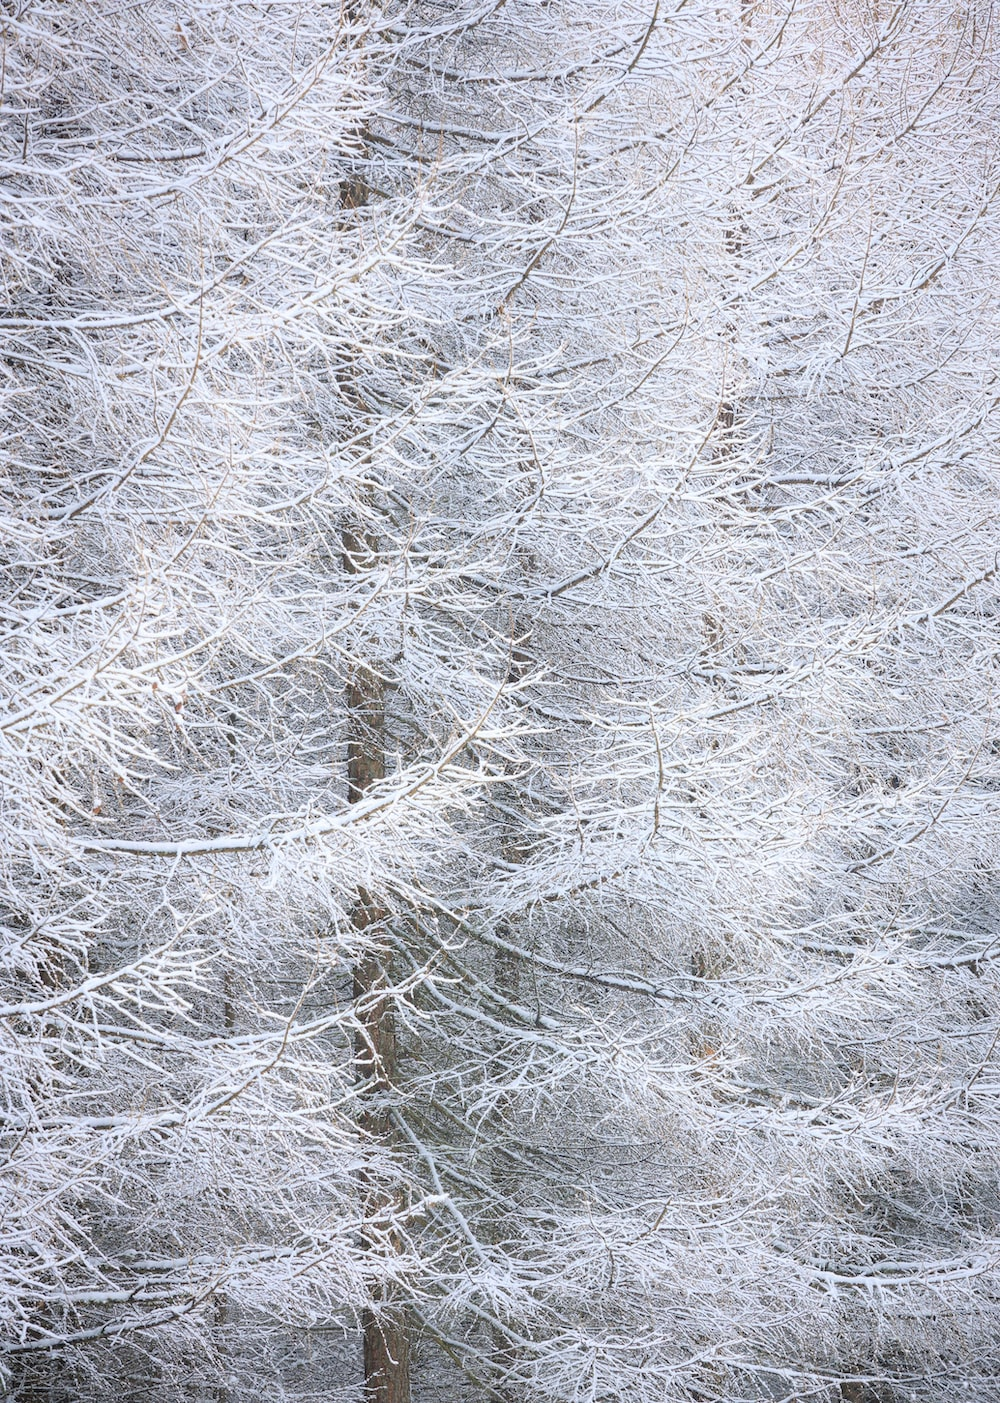 white snow on gray tree branches